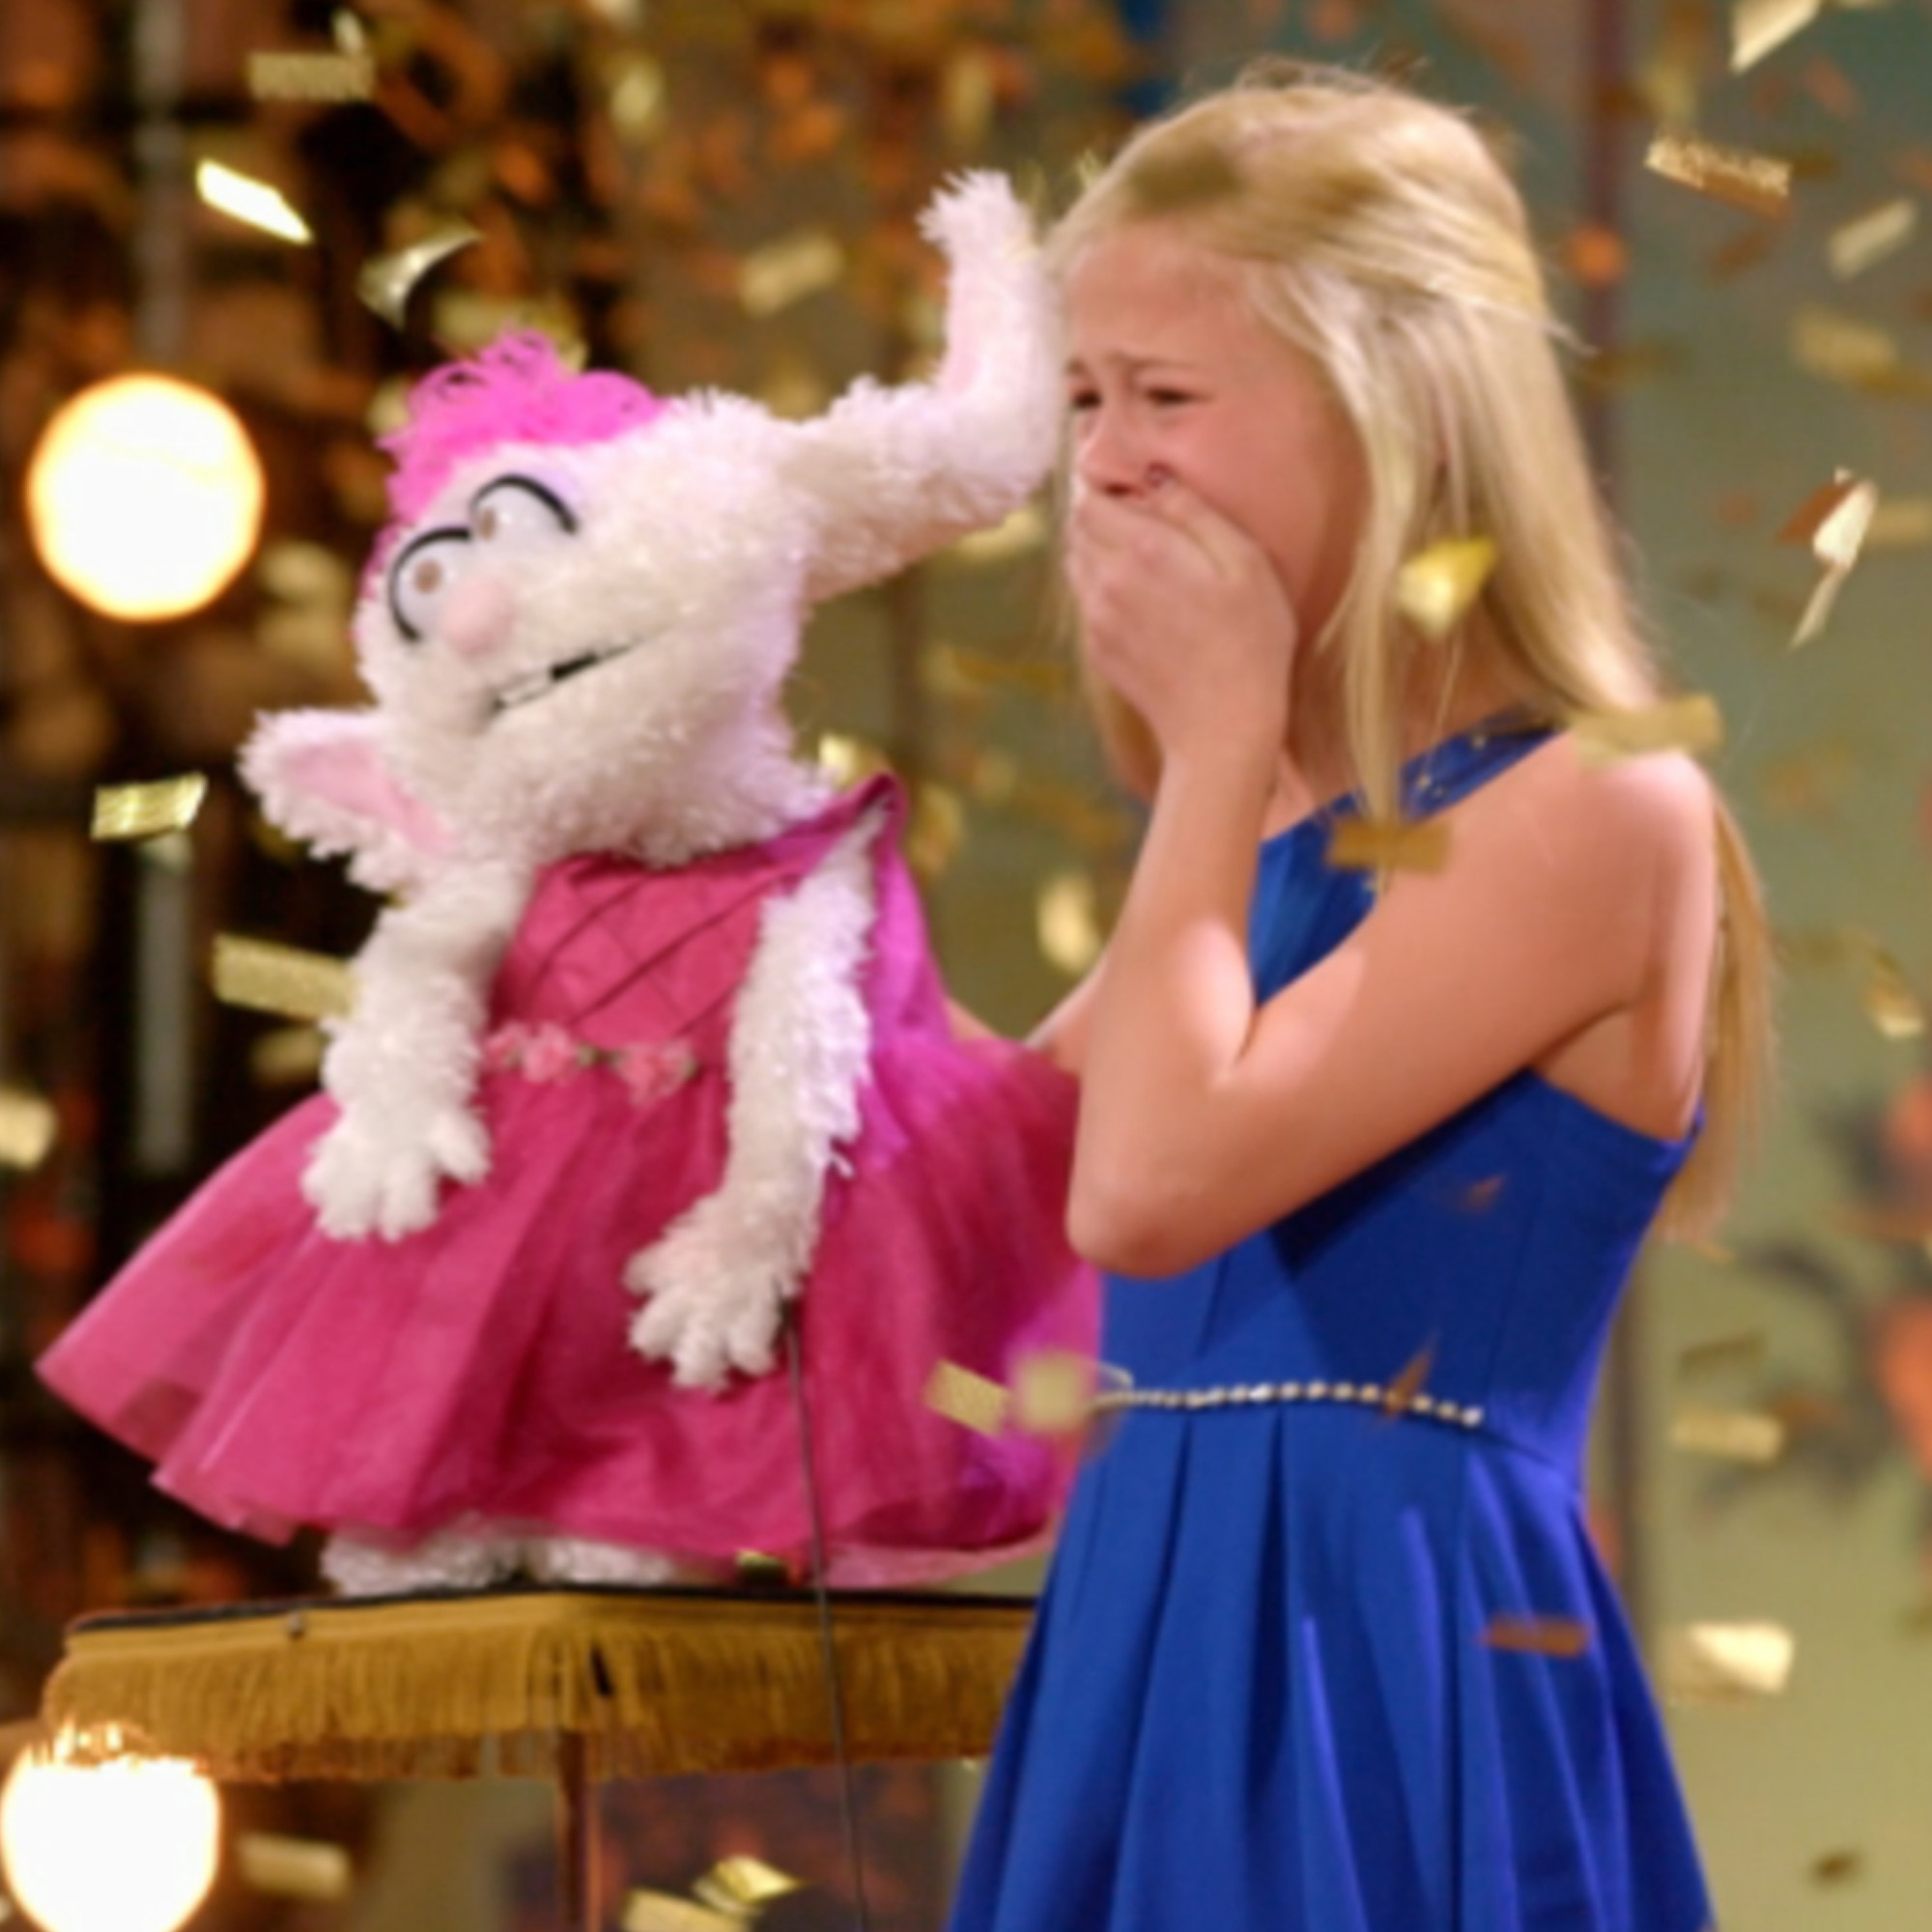 America's Got Talent Darci Gets The Gold Buzzer